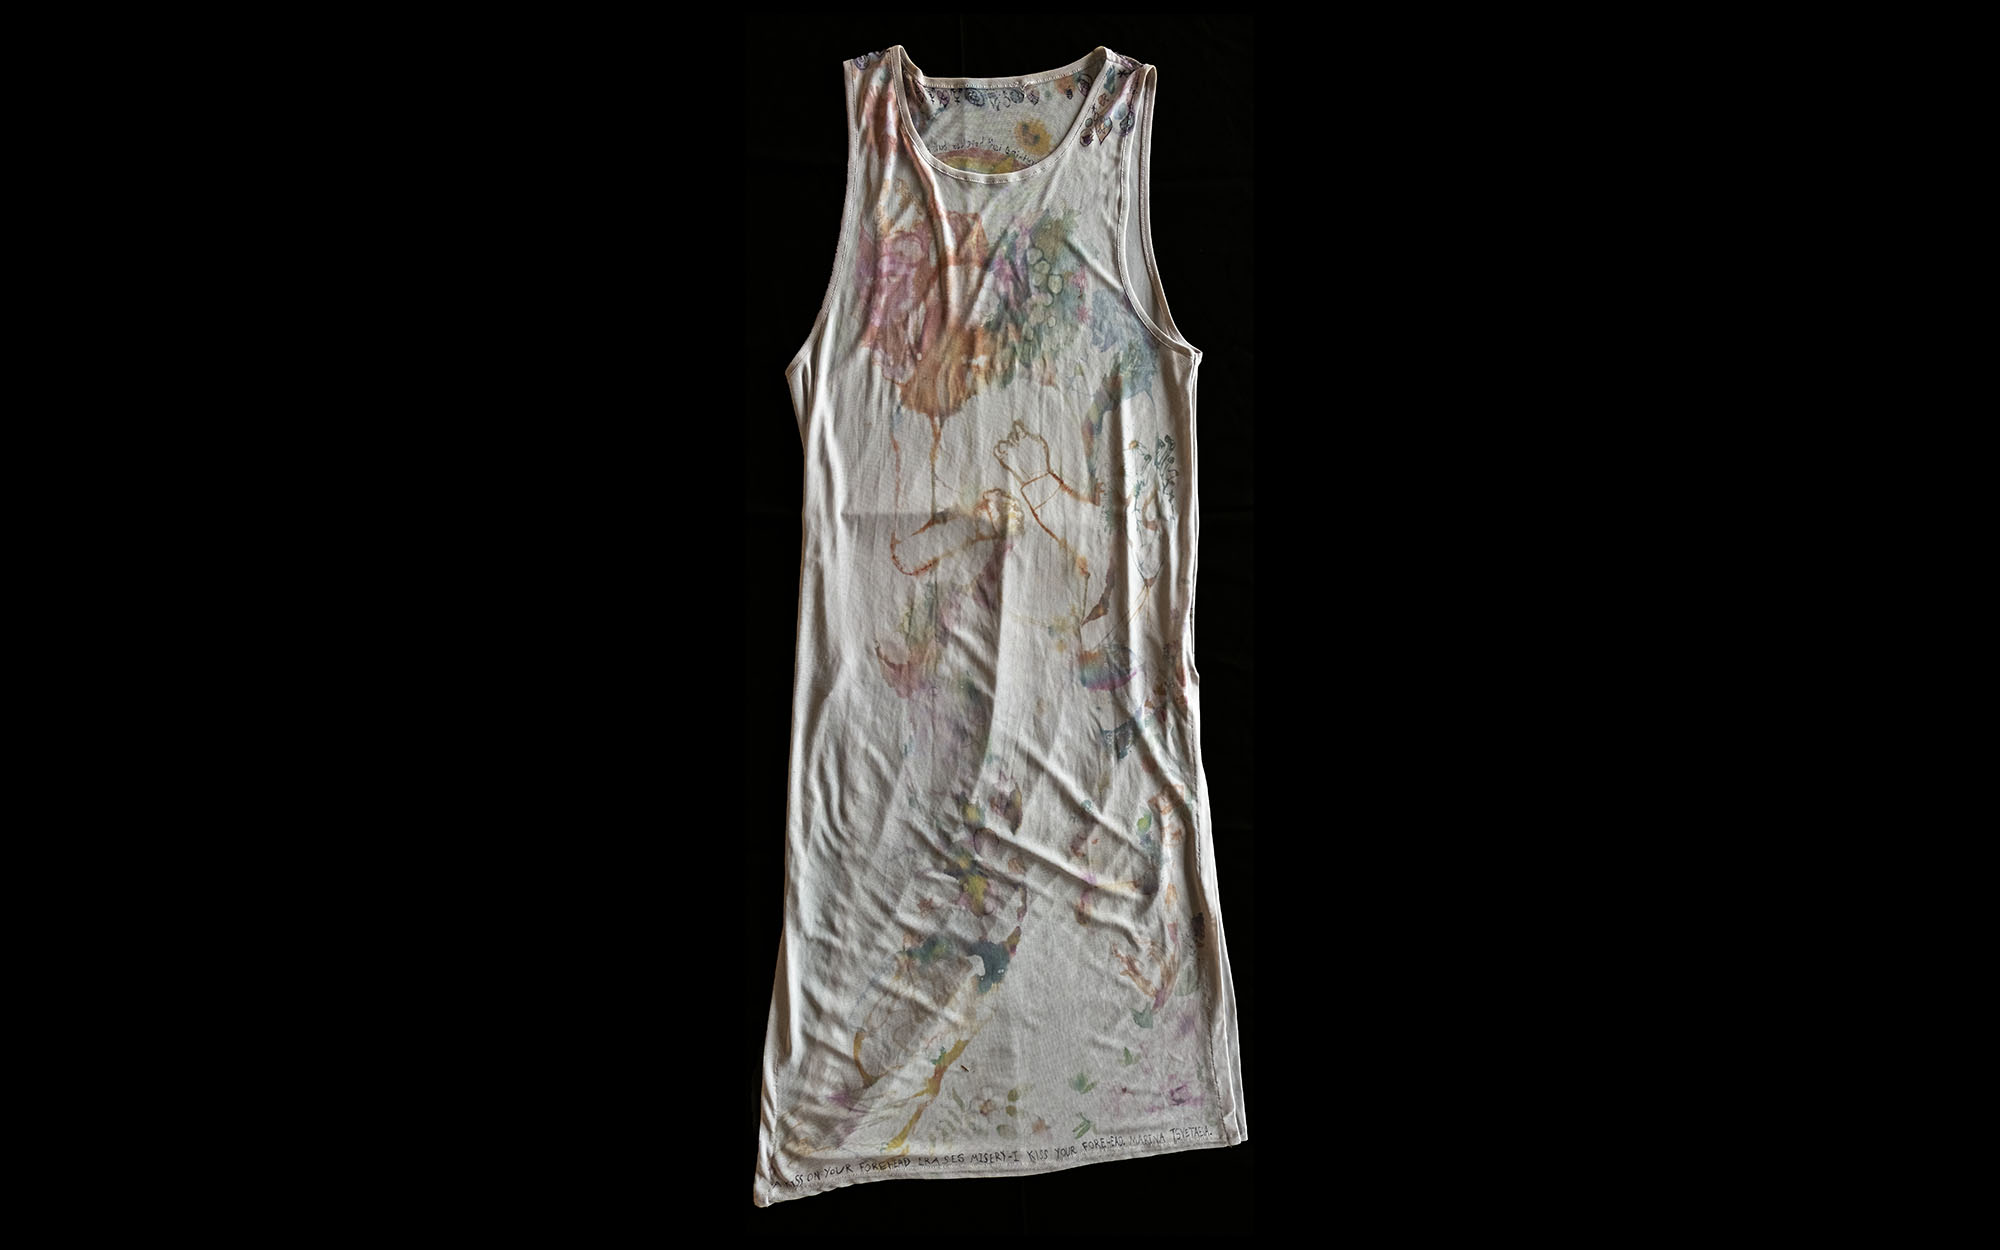 Dress with an array of colourful pictures drawn on it